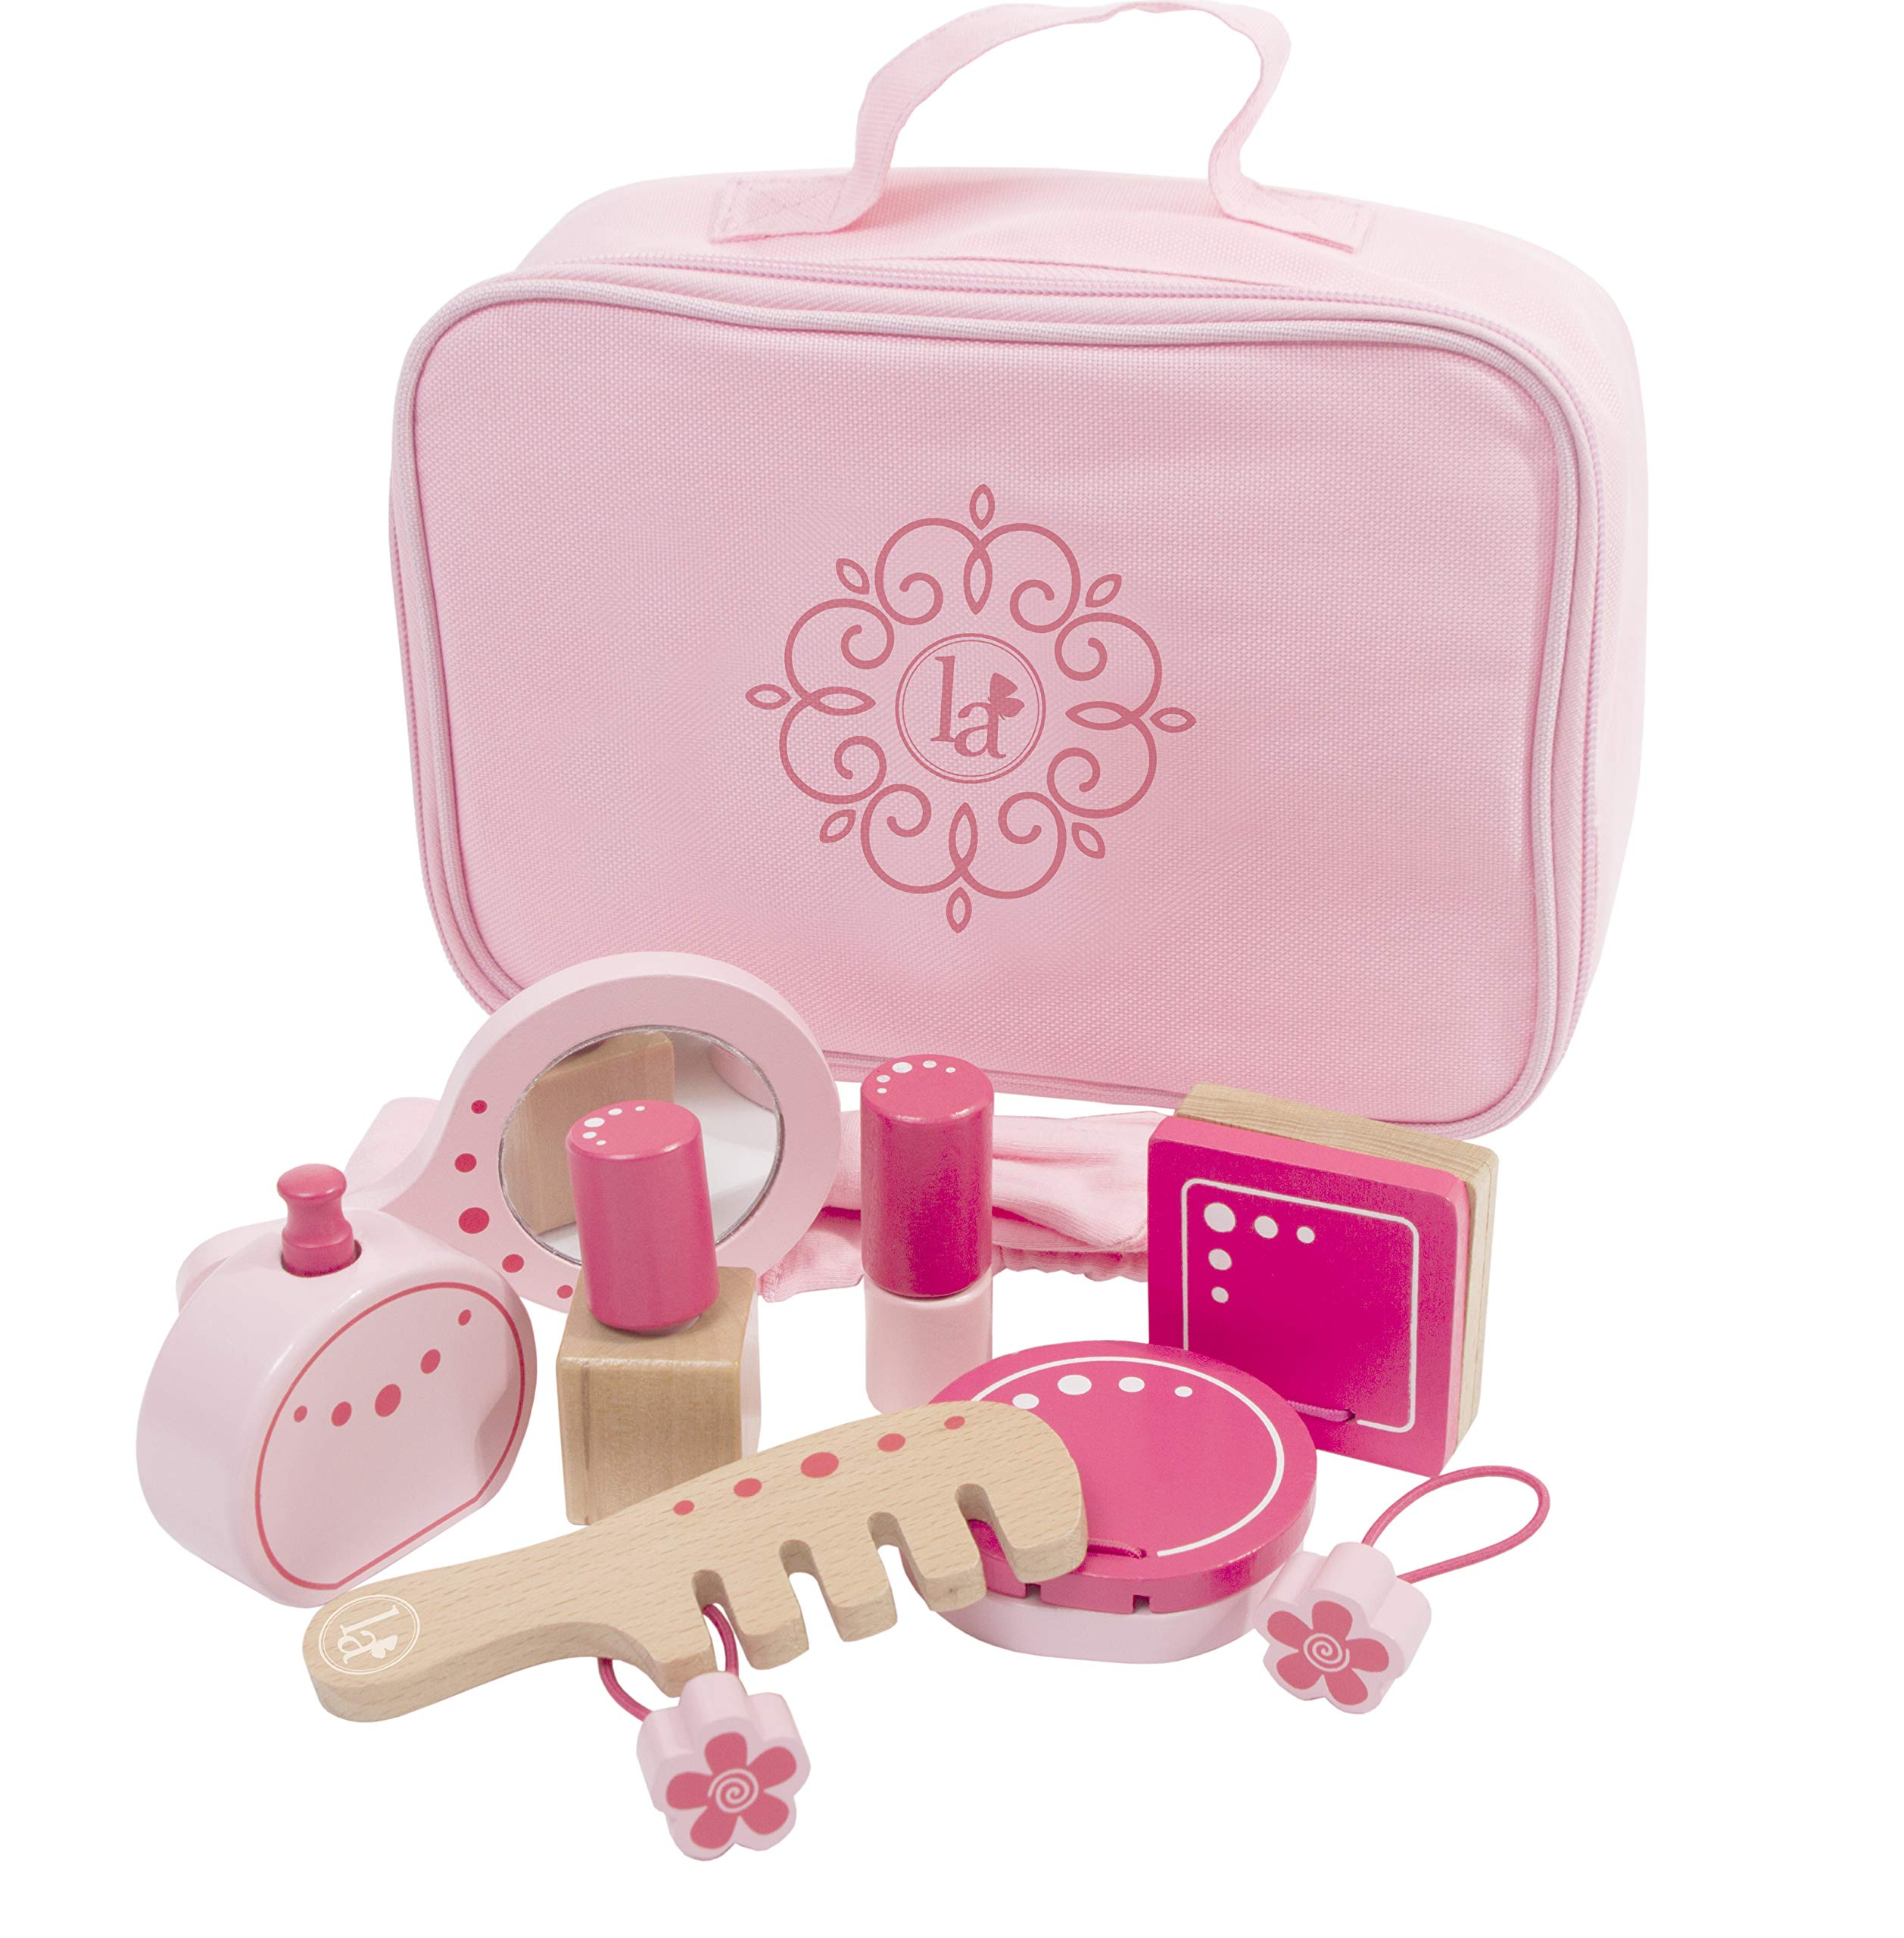 Little Adventures Little Beauty Salon Beautician Wooden Toy Set with Carrying Case Pink by Little Adventures (Image #3)